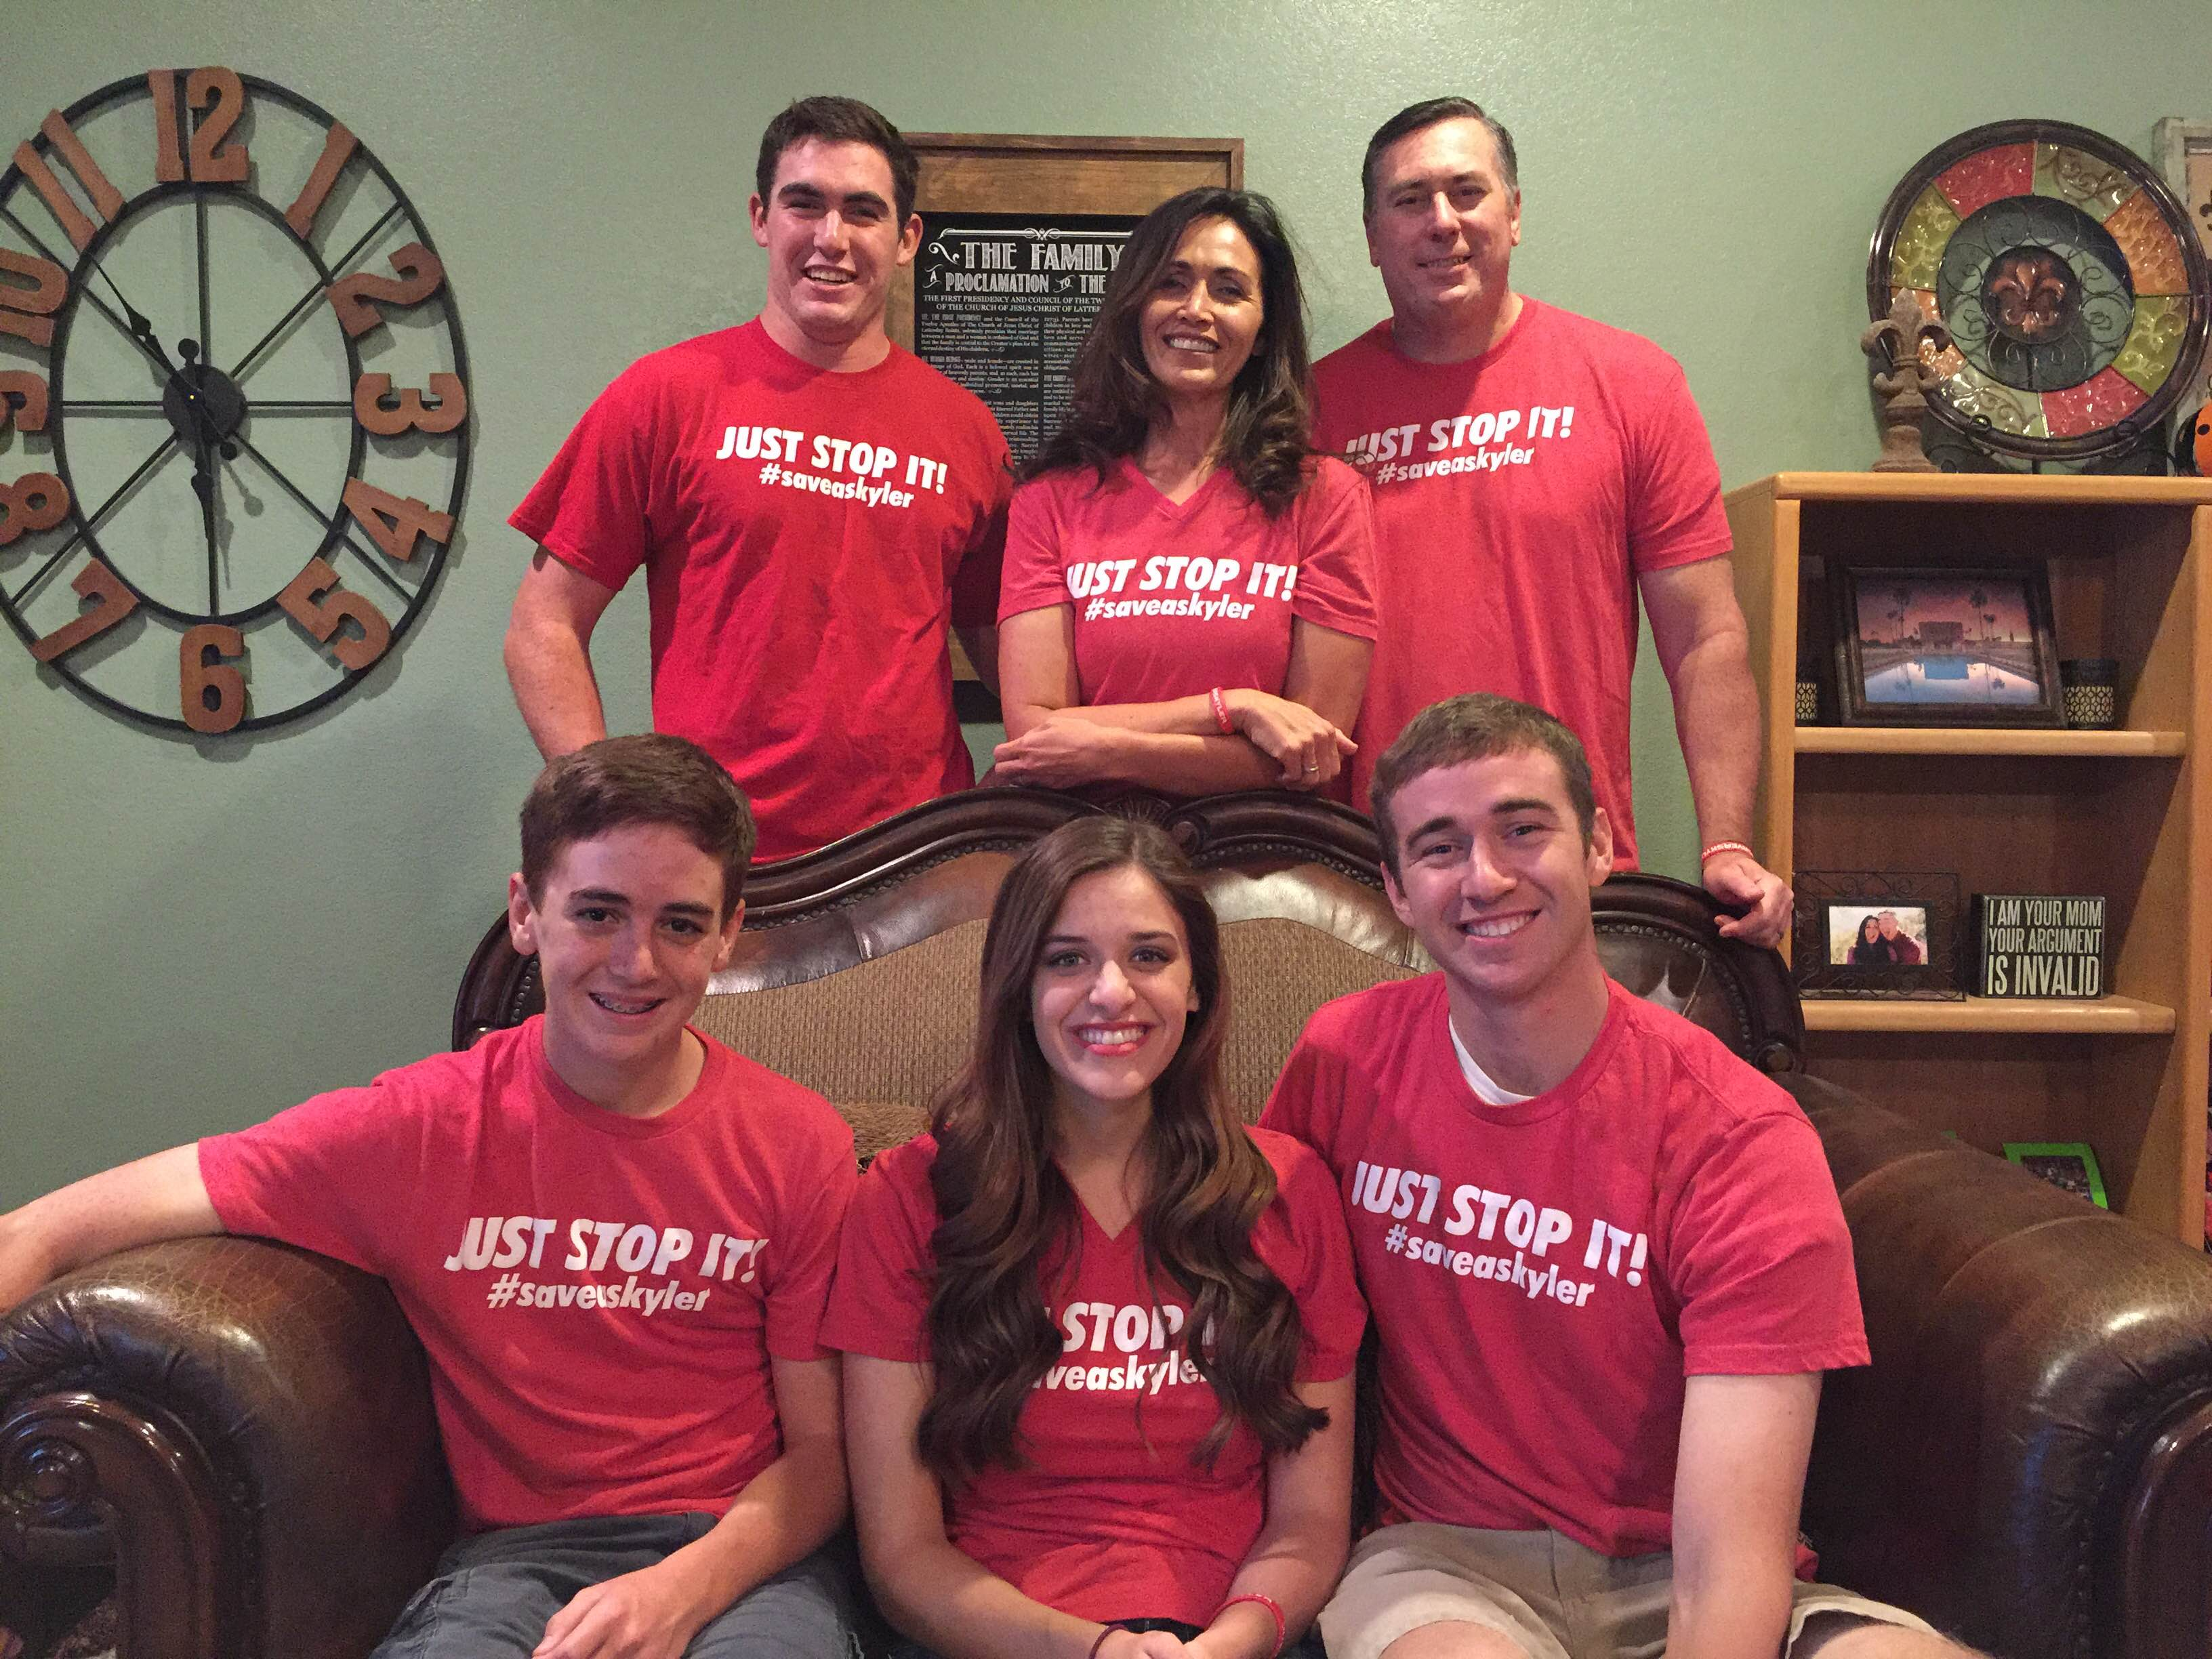 Stop Bullying The Wren Family (back Row Left To Right – Jack, Patti, And Bill Wren;  Front Row Mark, Allie (Bryson's Wife) And Bryson Wren) Show Off Their Red T Shirts, #saveaskyler, Just Stop It! Photo Courtesy Of The Wren Family